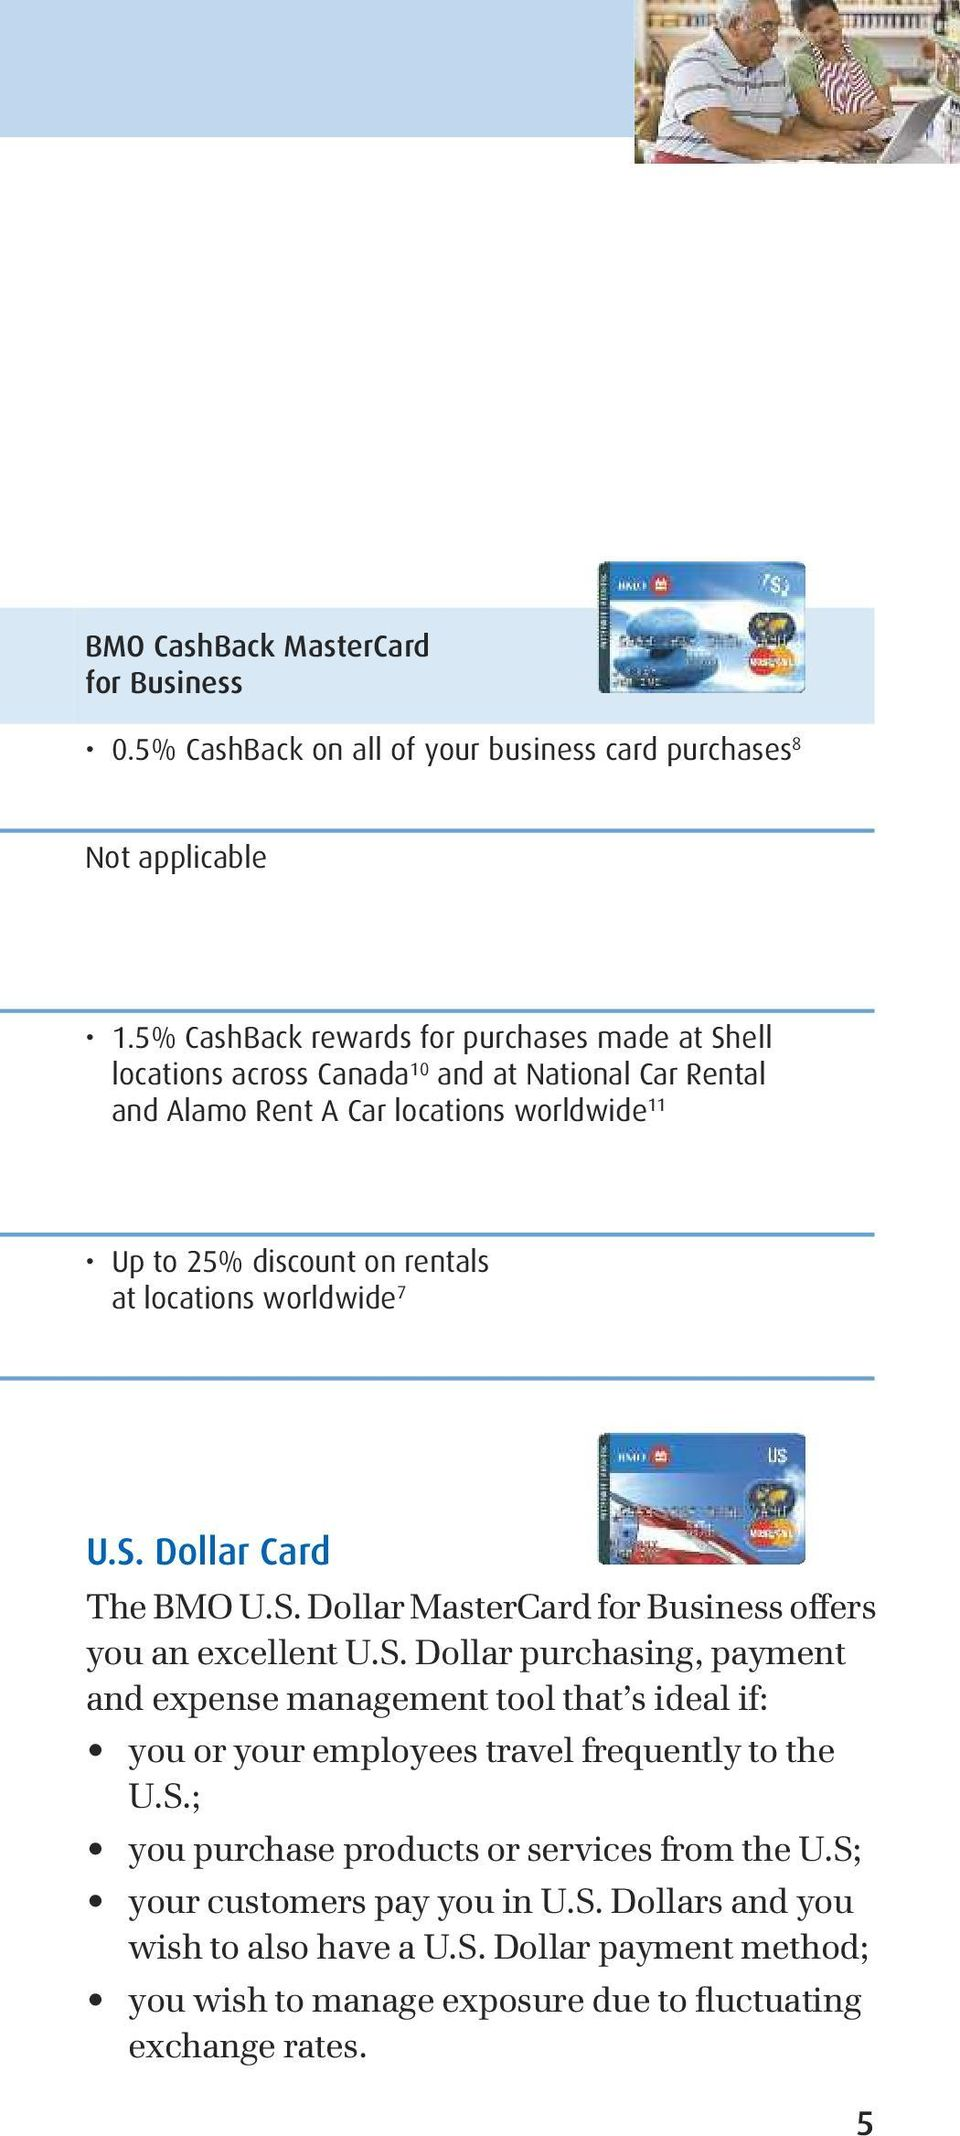 locations worldwide 7 U.S. Dollar Card The BMO U.S. Dollar MasterCard for Business offers you an excellent U.S. Dollar purchasing, payment and expense management tool that s ideal if: you or your employees travel frequently to the U.